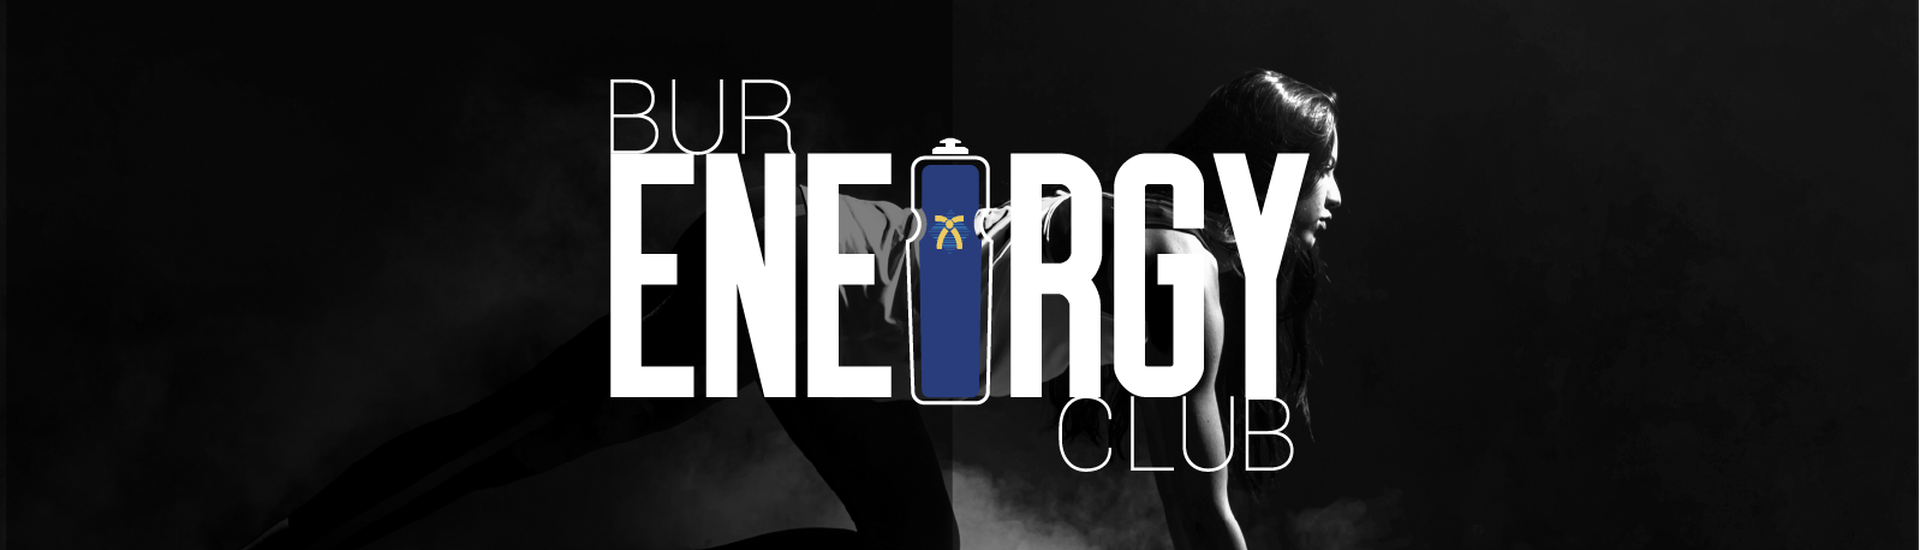 Club Interamnia | Anteprima Burenergy